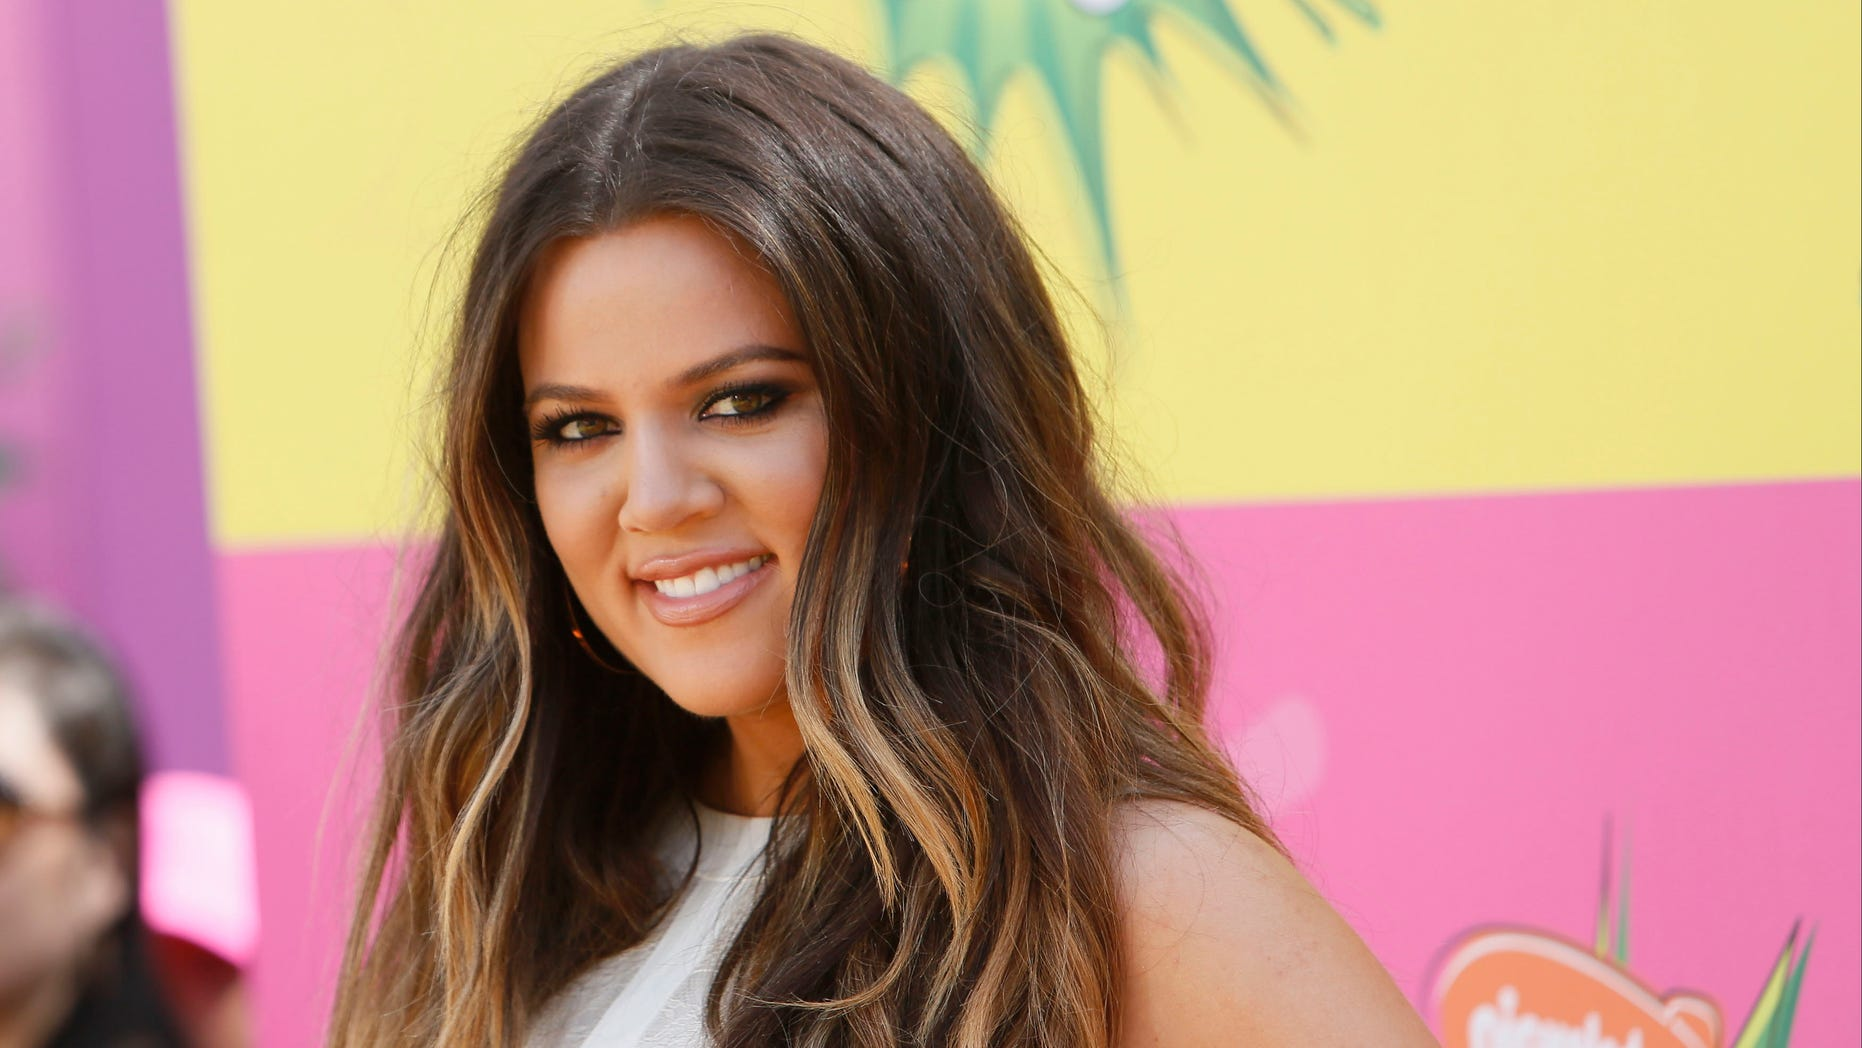 March 23, 2013. Khloe Kardashian arrives at the 2013 Kids Choice Awards in Los Angeles, California.